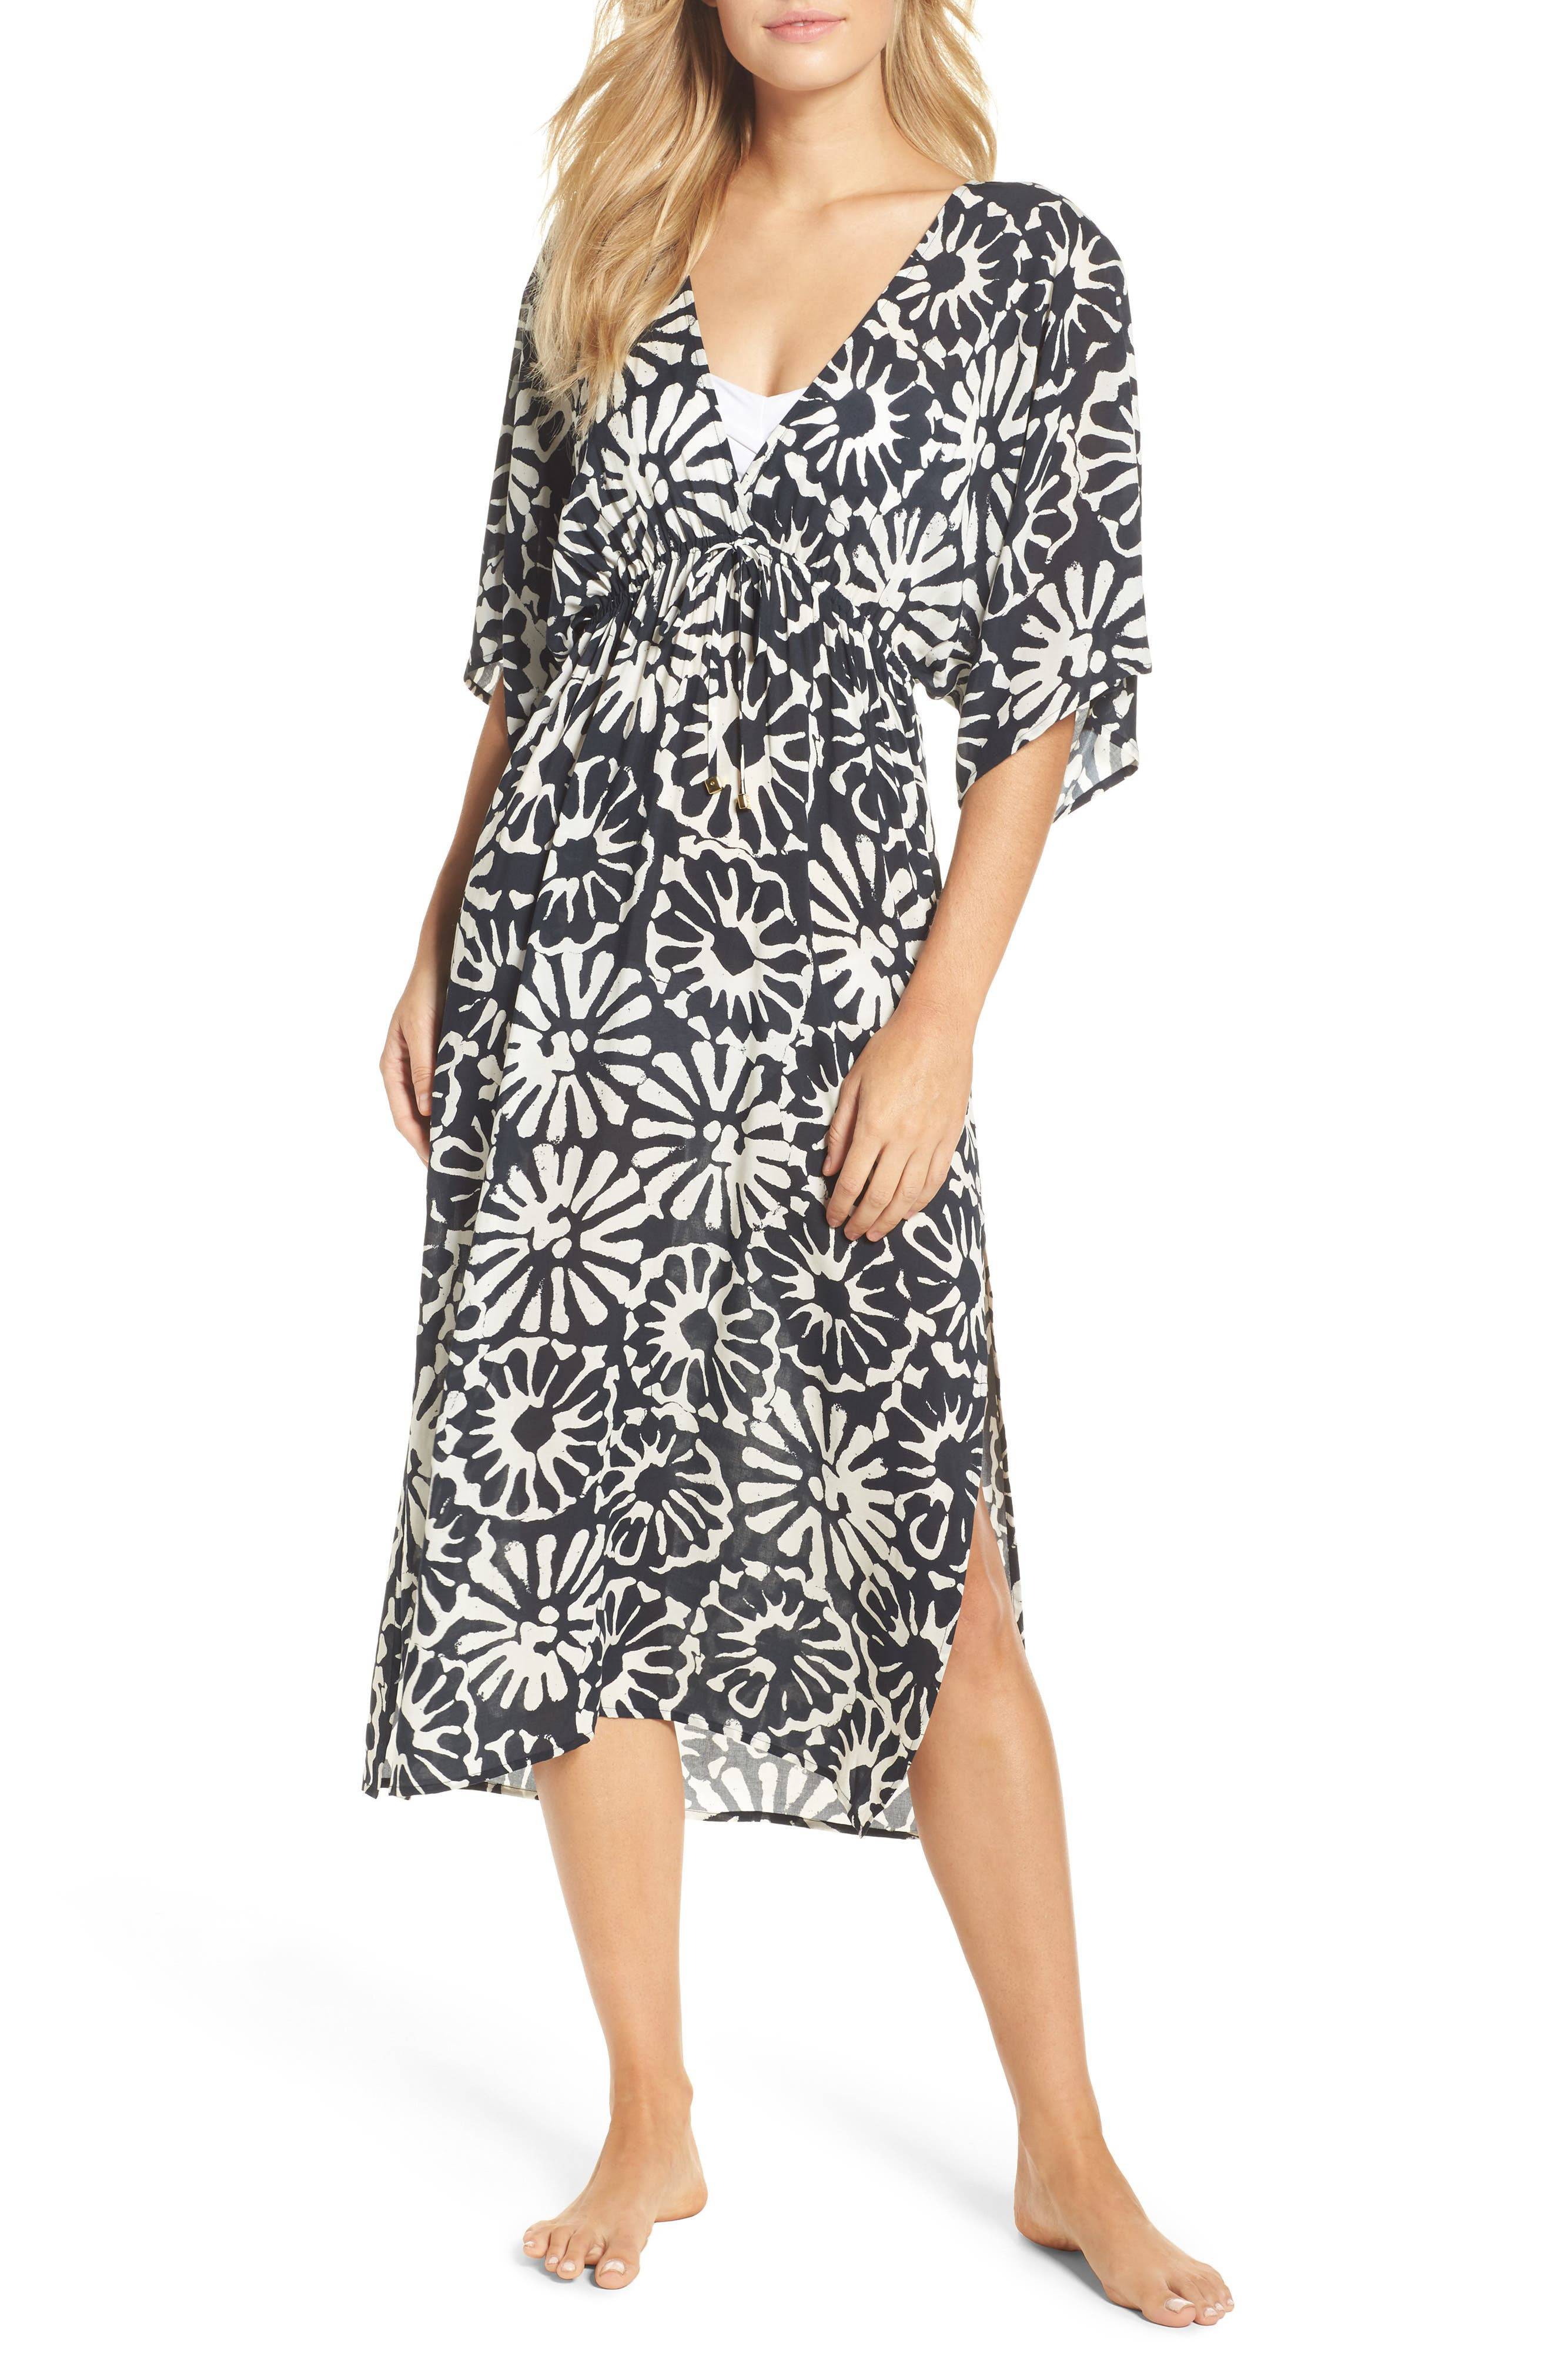 Main Image - Tory Burch Pomelo Floral Cover-Up Dress